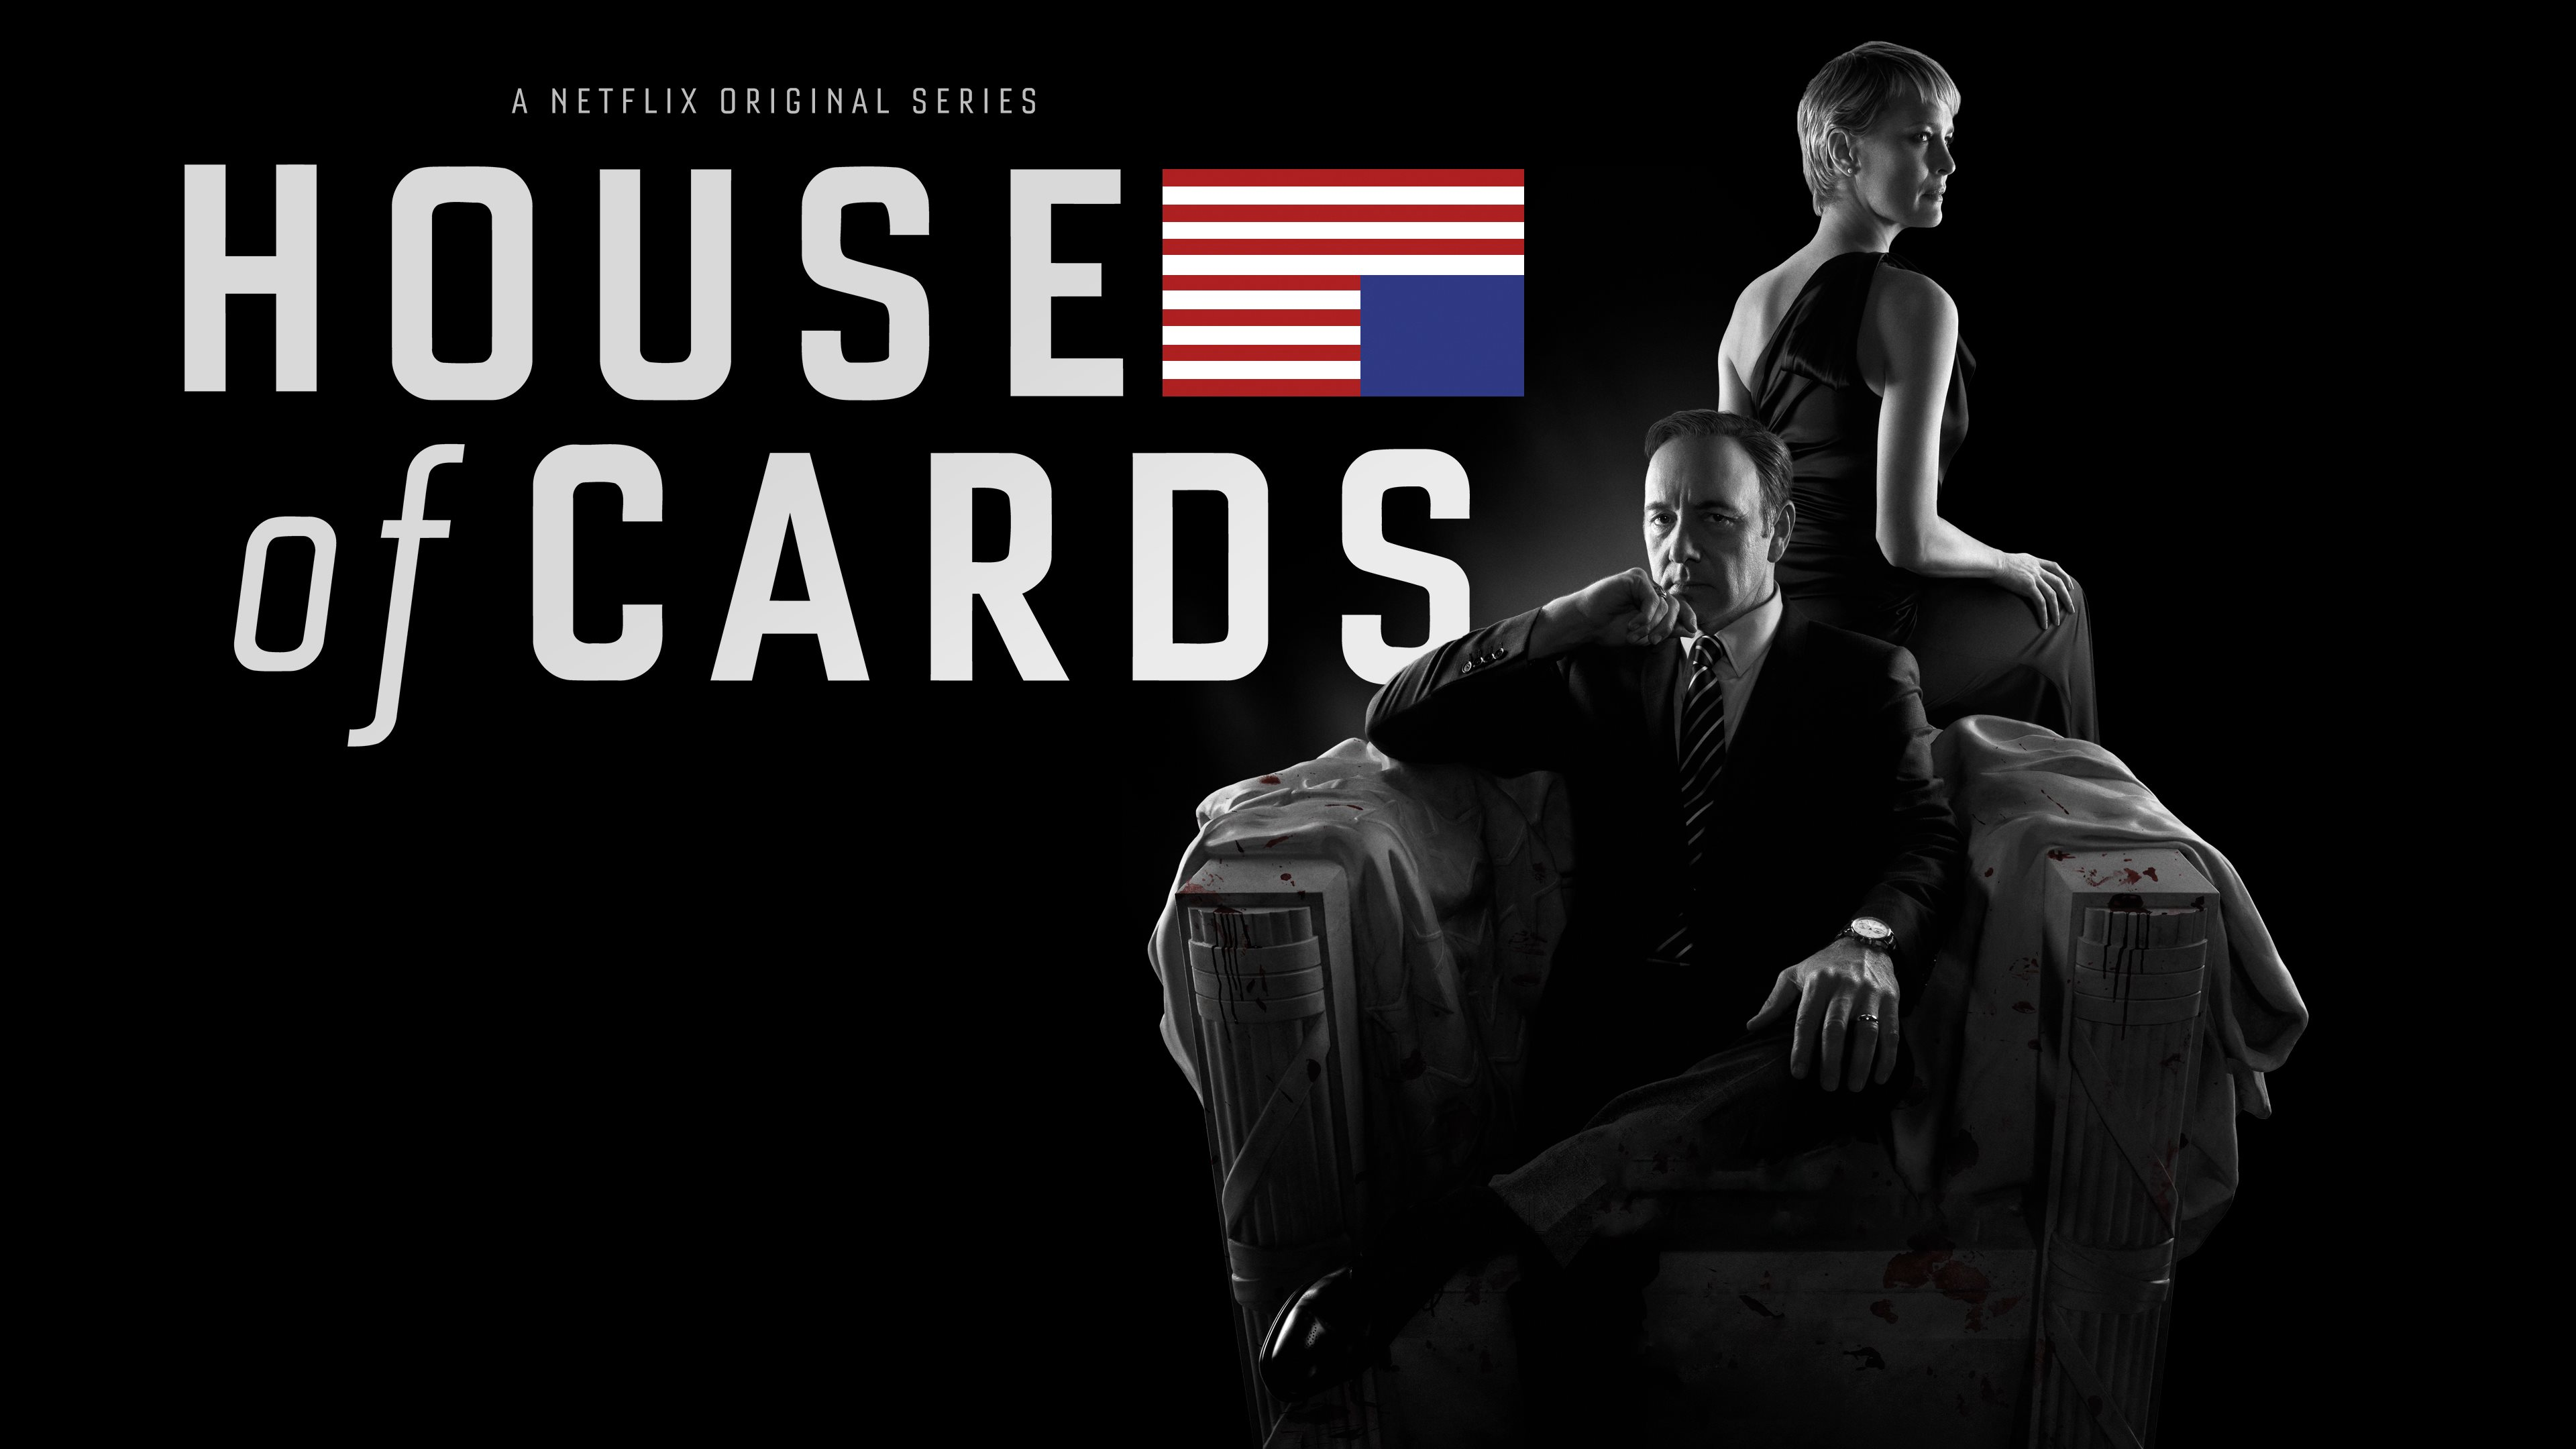 5 Hd House Of Cards Wallpapers